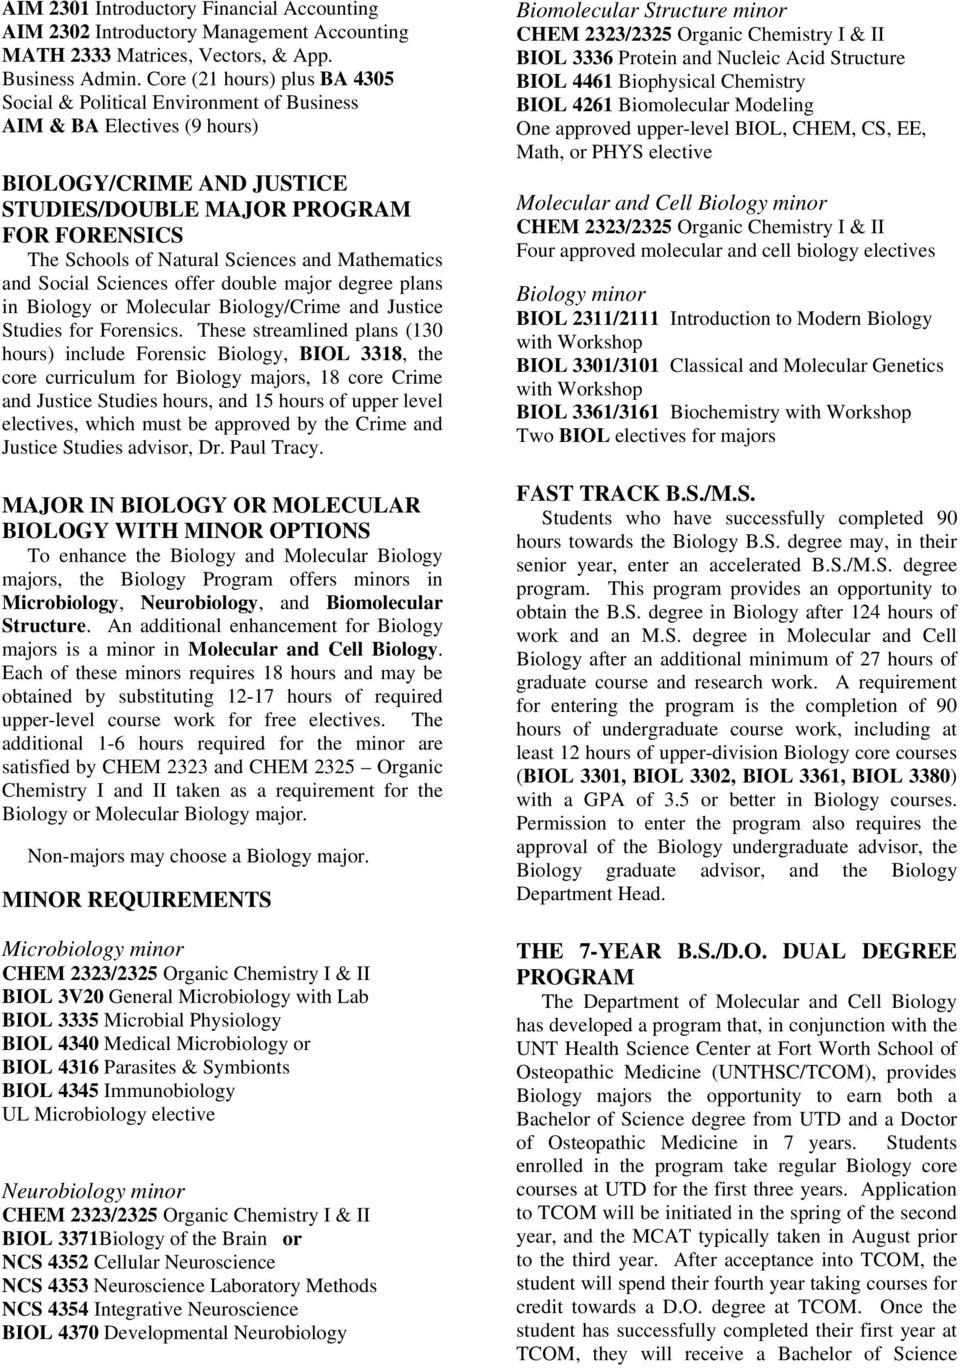 DEPARTMENT OF MOLECULAR AND CELL BIOLOGY - PDF